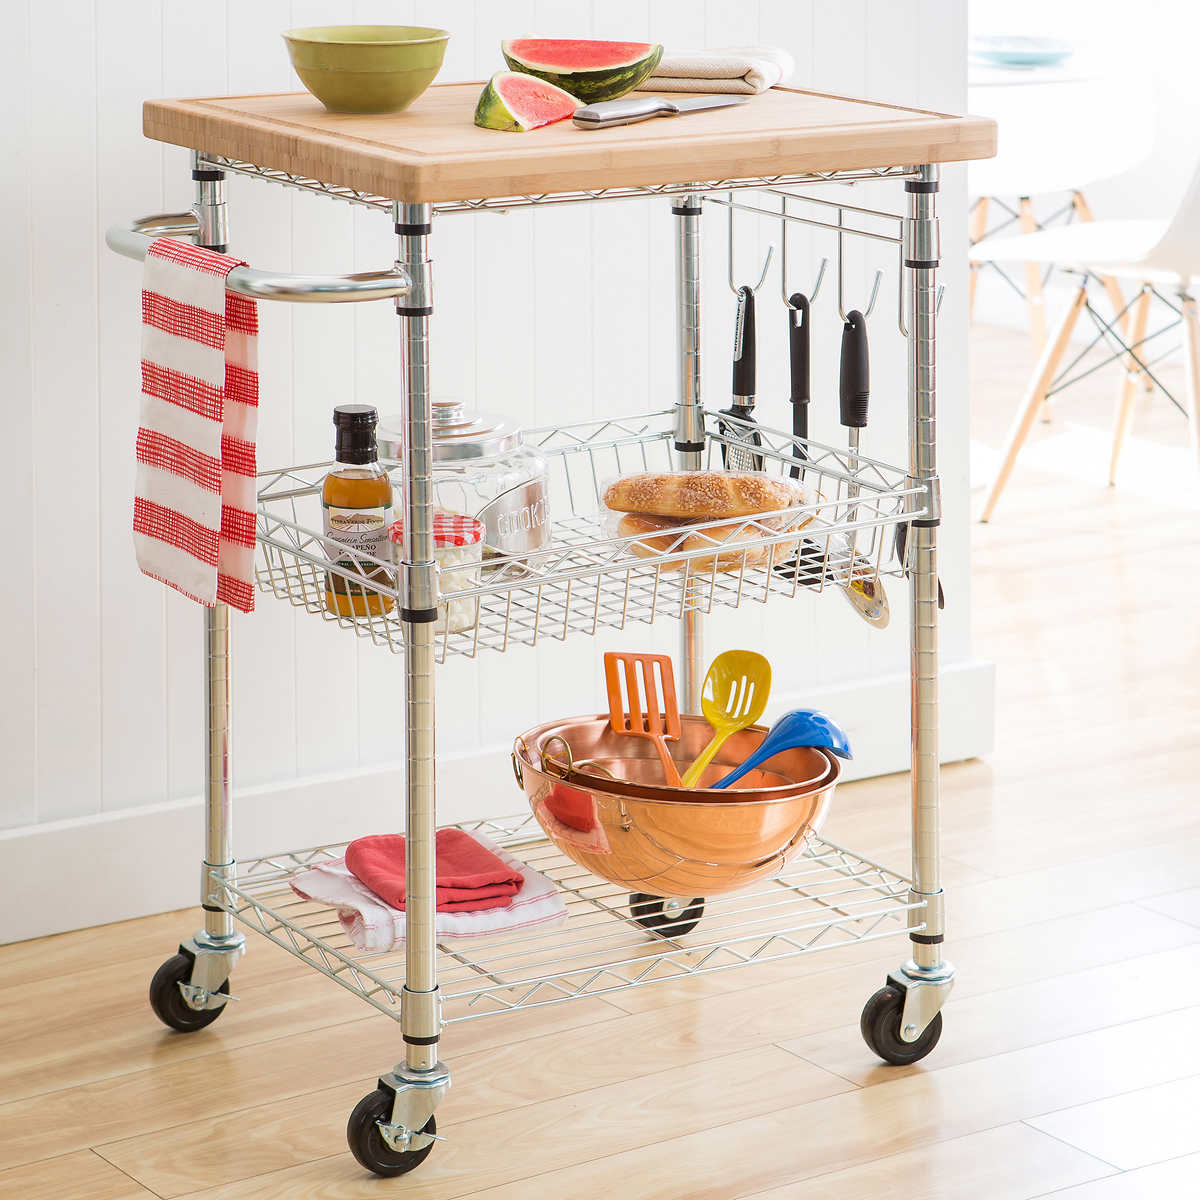 kitchen cutting table – home design and decorating